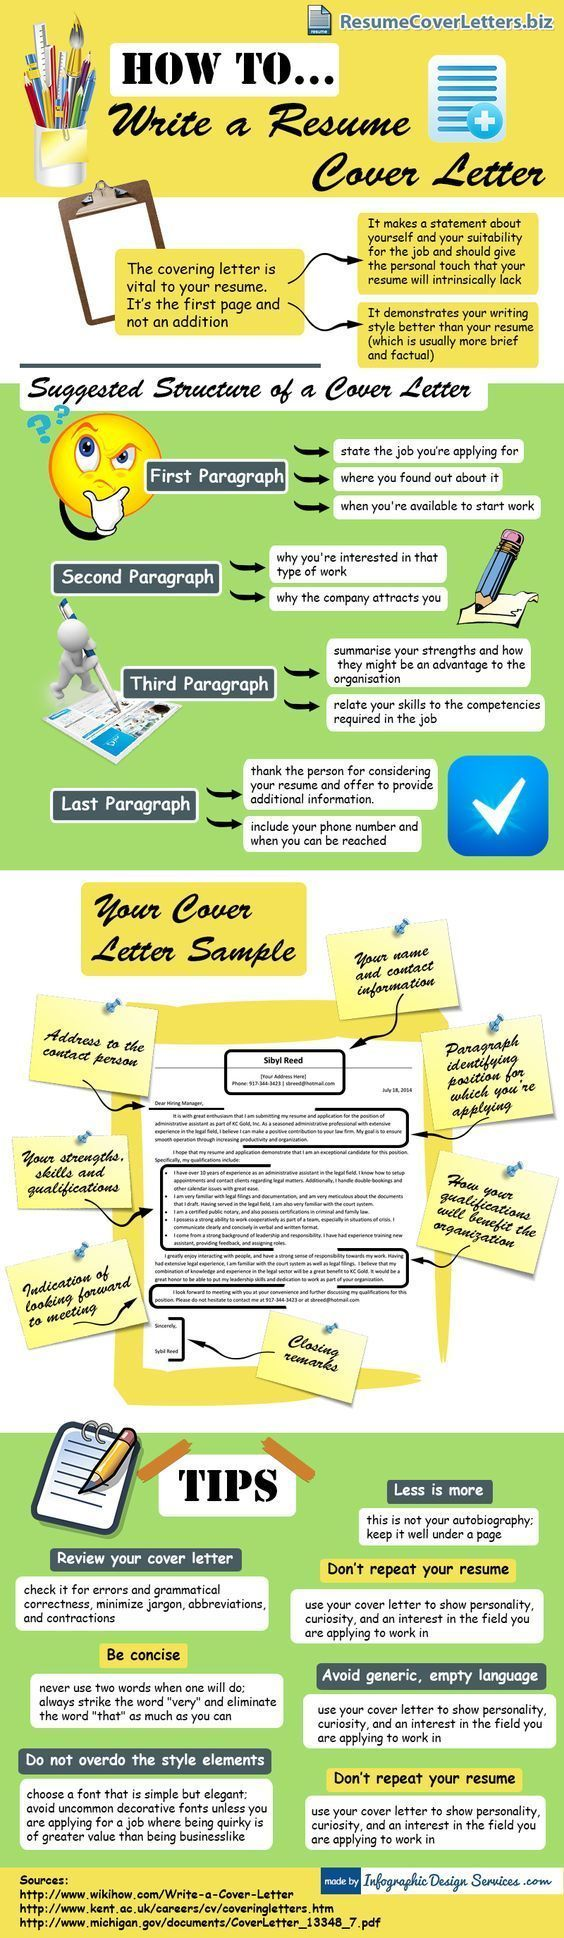 23 Best Building Your Resume Images On Pinterest Resume Tips